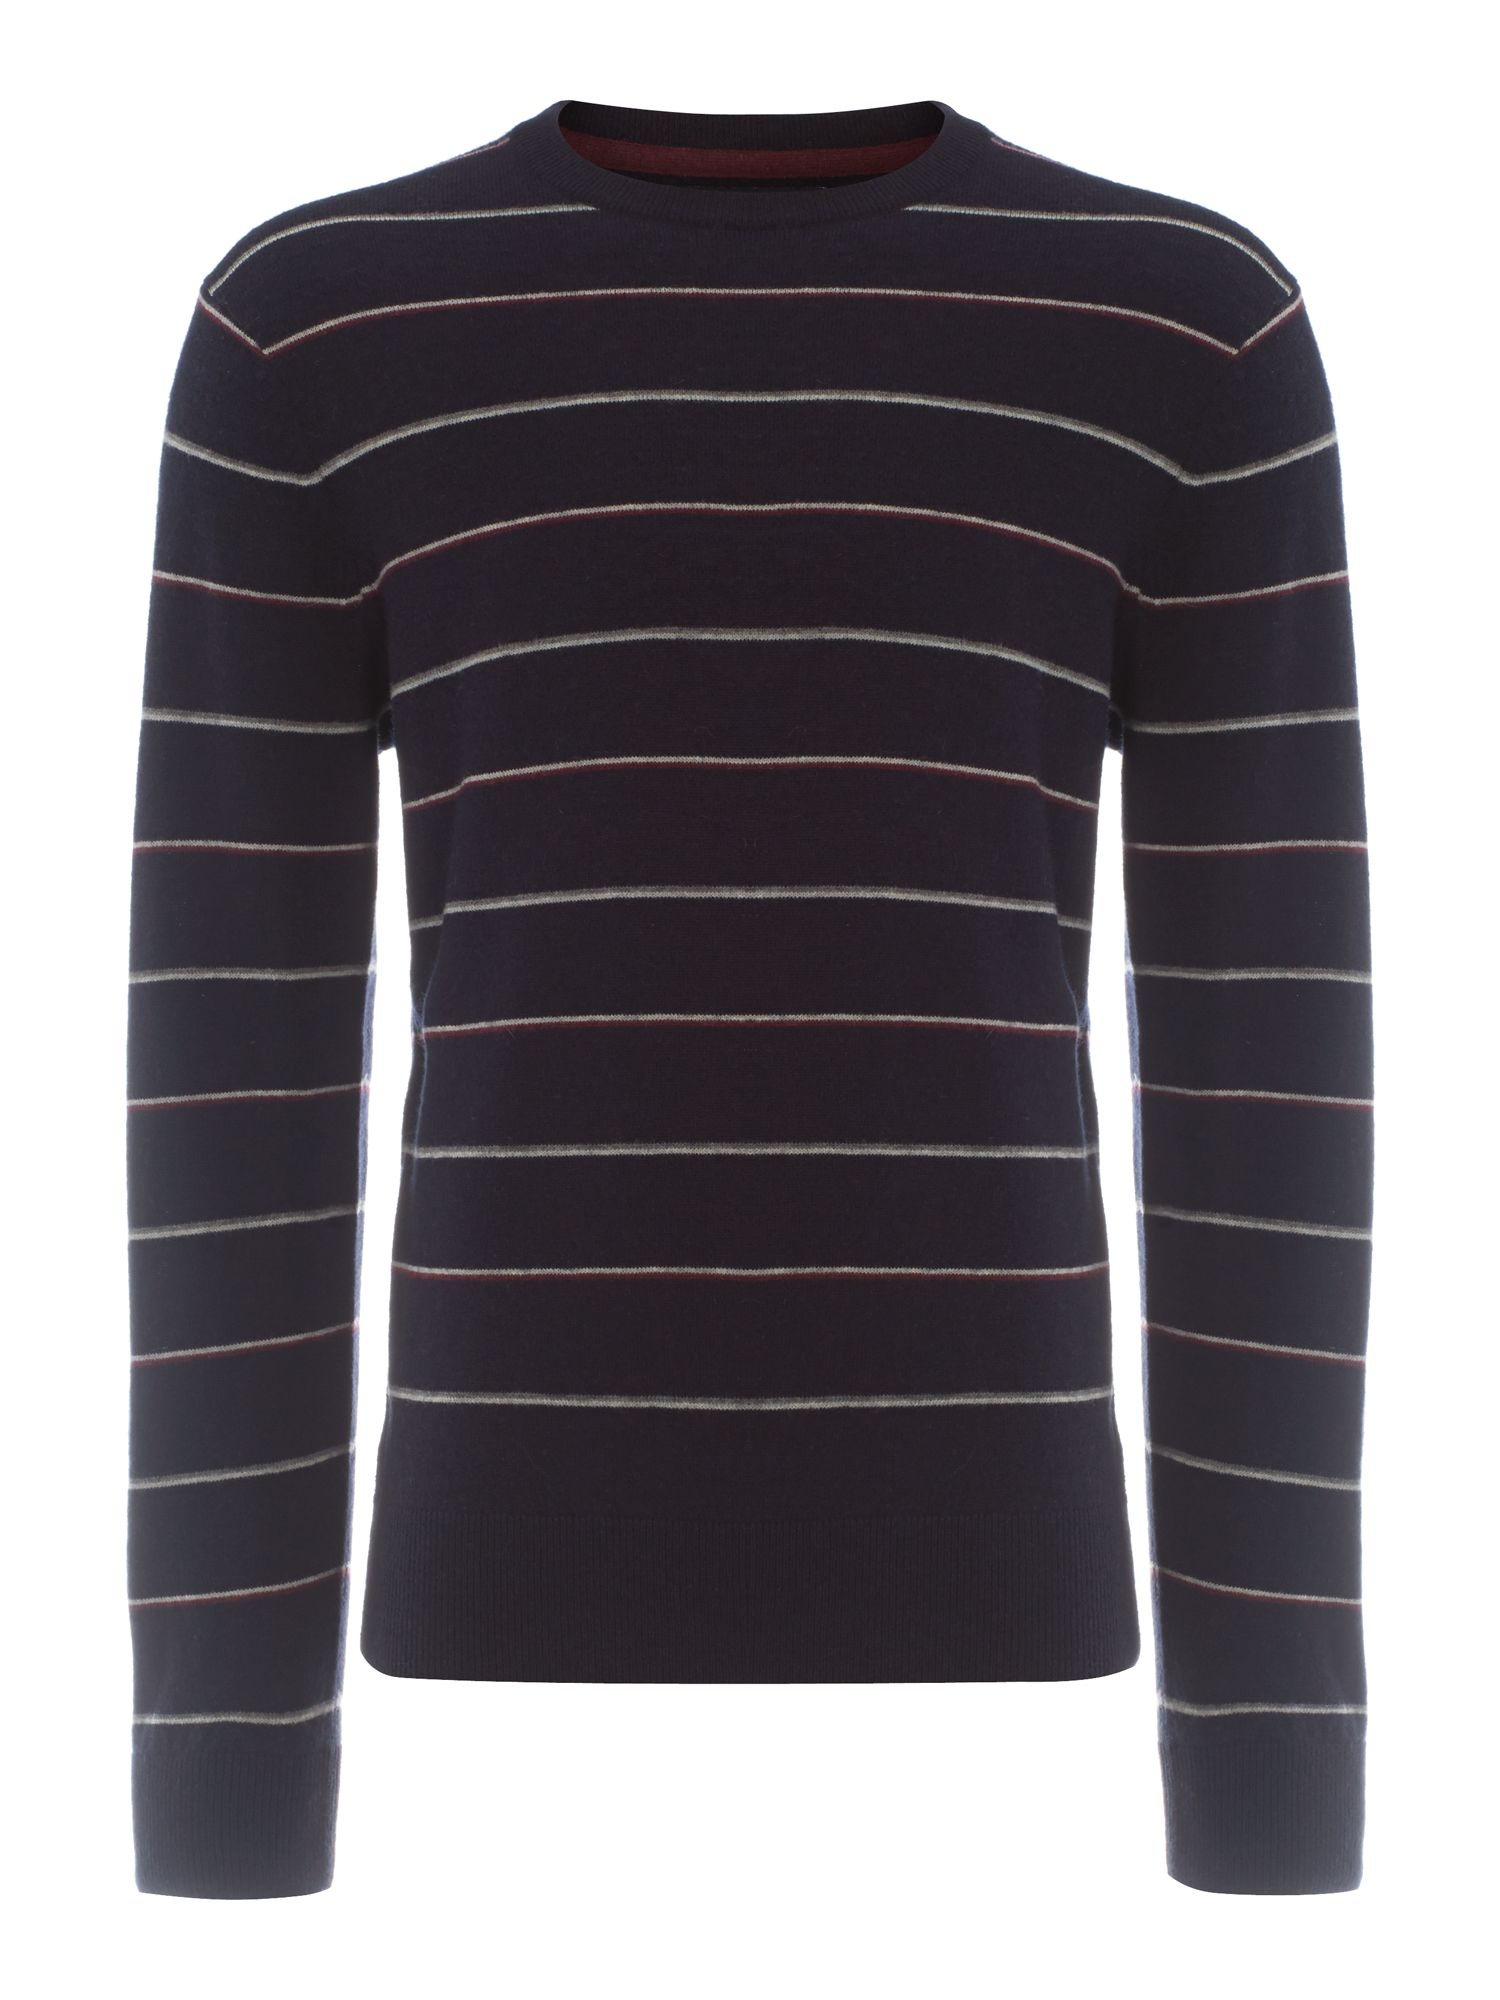 Malton striped knitted jumper